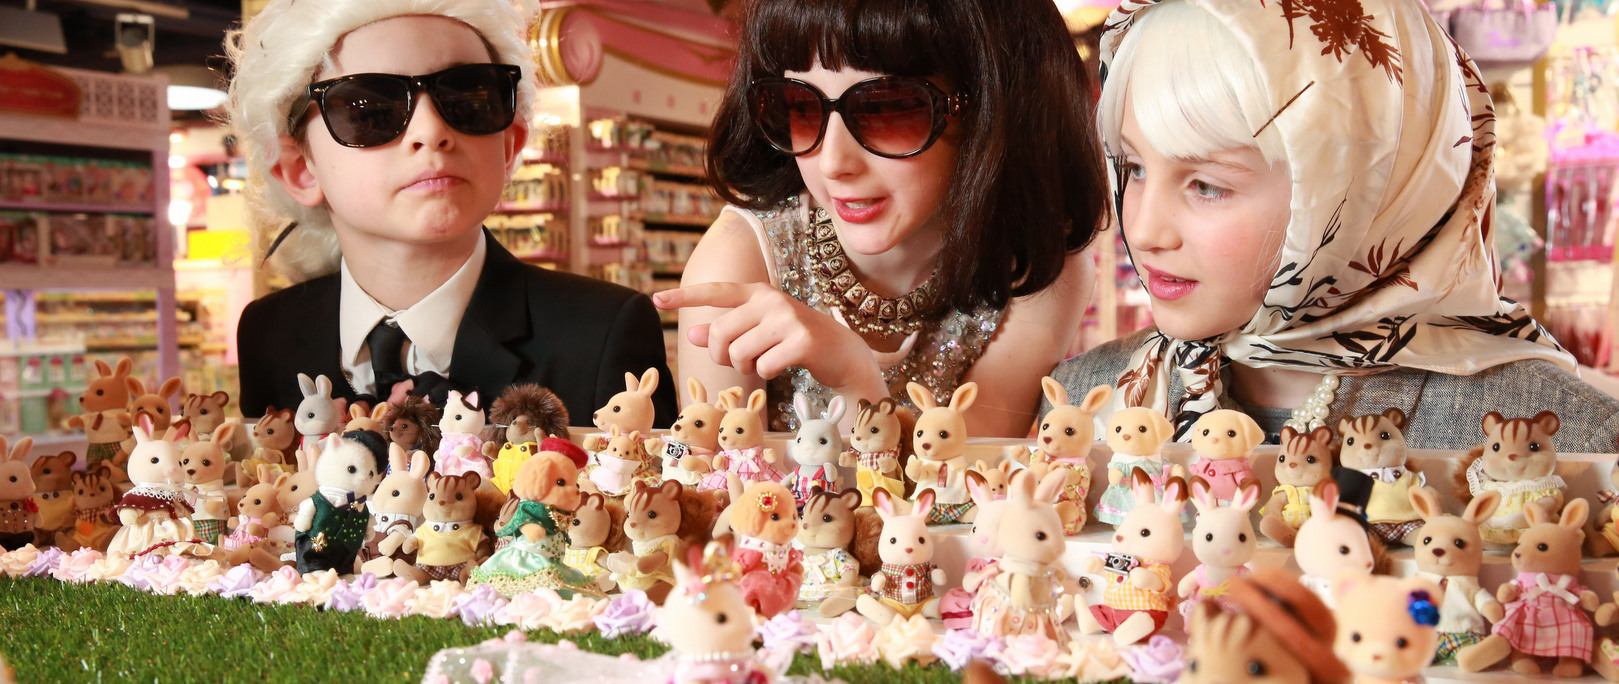 EDITORIAL USE ONLY L-R - Rufus Rumford, aged 8, dressed as Karl Lagerfeld, Connie Davies, aged 10 dressed as Anna Wintour and Chloe Sweeting, aged 9, dressed as The Queen, on the front row at the opening of the worldÕs smallest fashion show. The event was to celebrate the launch of the new Sylvanian Families Town at Hamleys Regent Street in London. PRESS ASSOCIATION Photo. Picture date: Thursday March 22, 2018. Photo credit should read: Matt Alexander/PA Wire